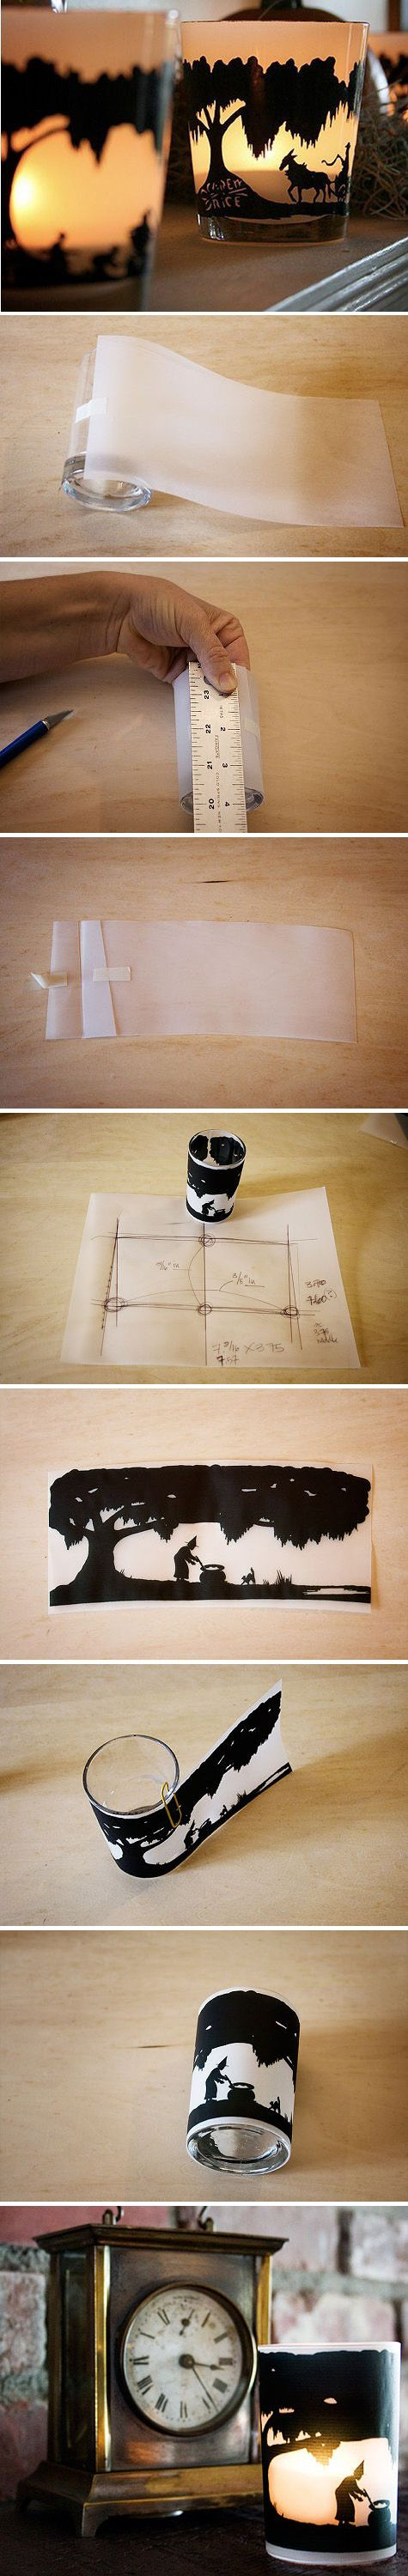 How to make a decorative lamp. | CostMad do not sell this idea/product. Please visit our blog for more funky ideas